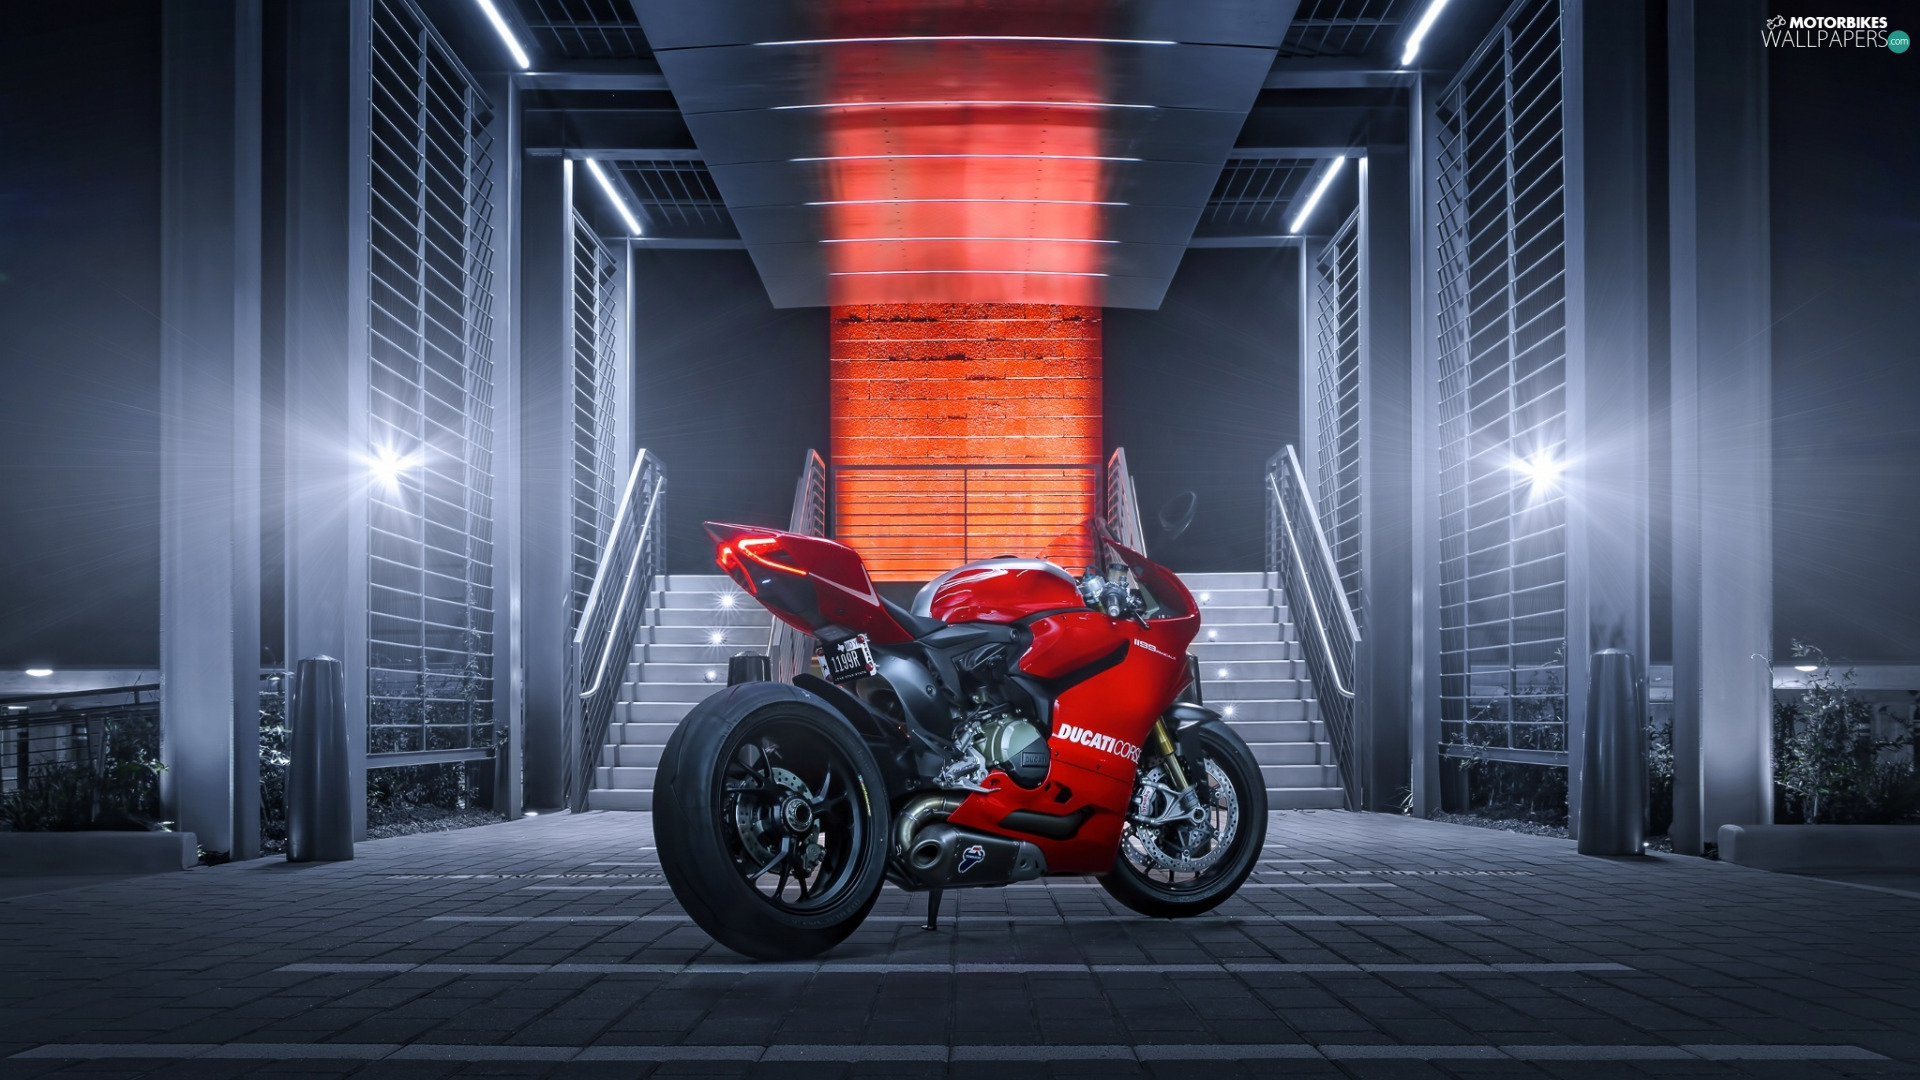 Ducati 1199 Paginale, Red, motor-bike